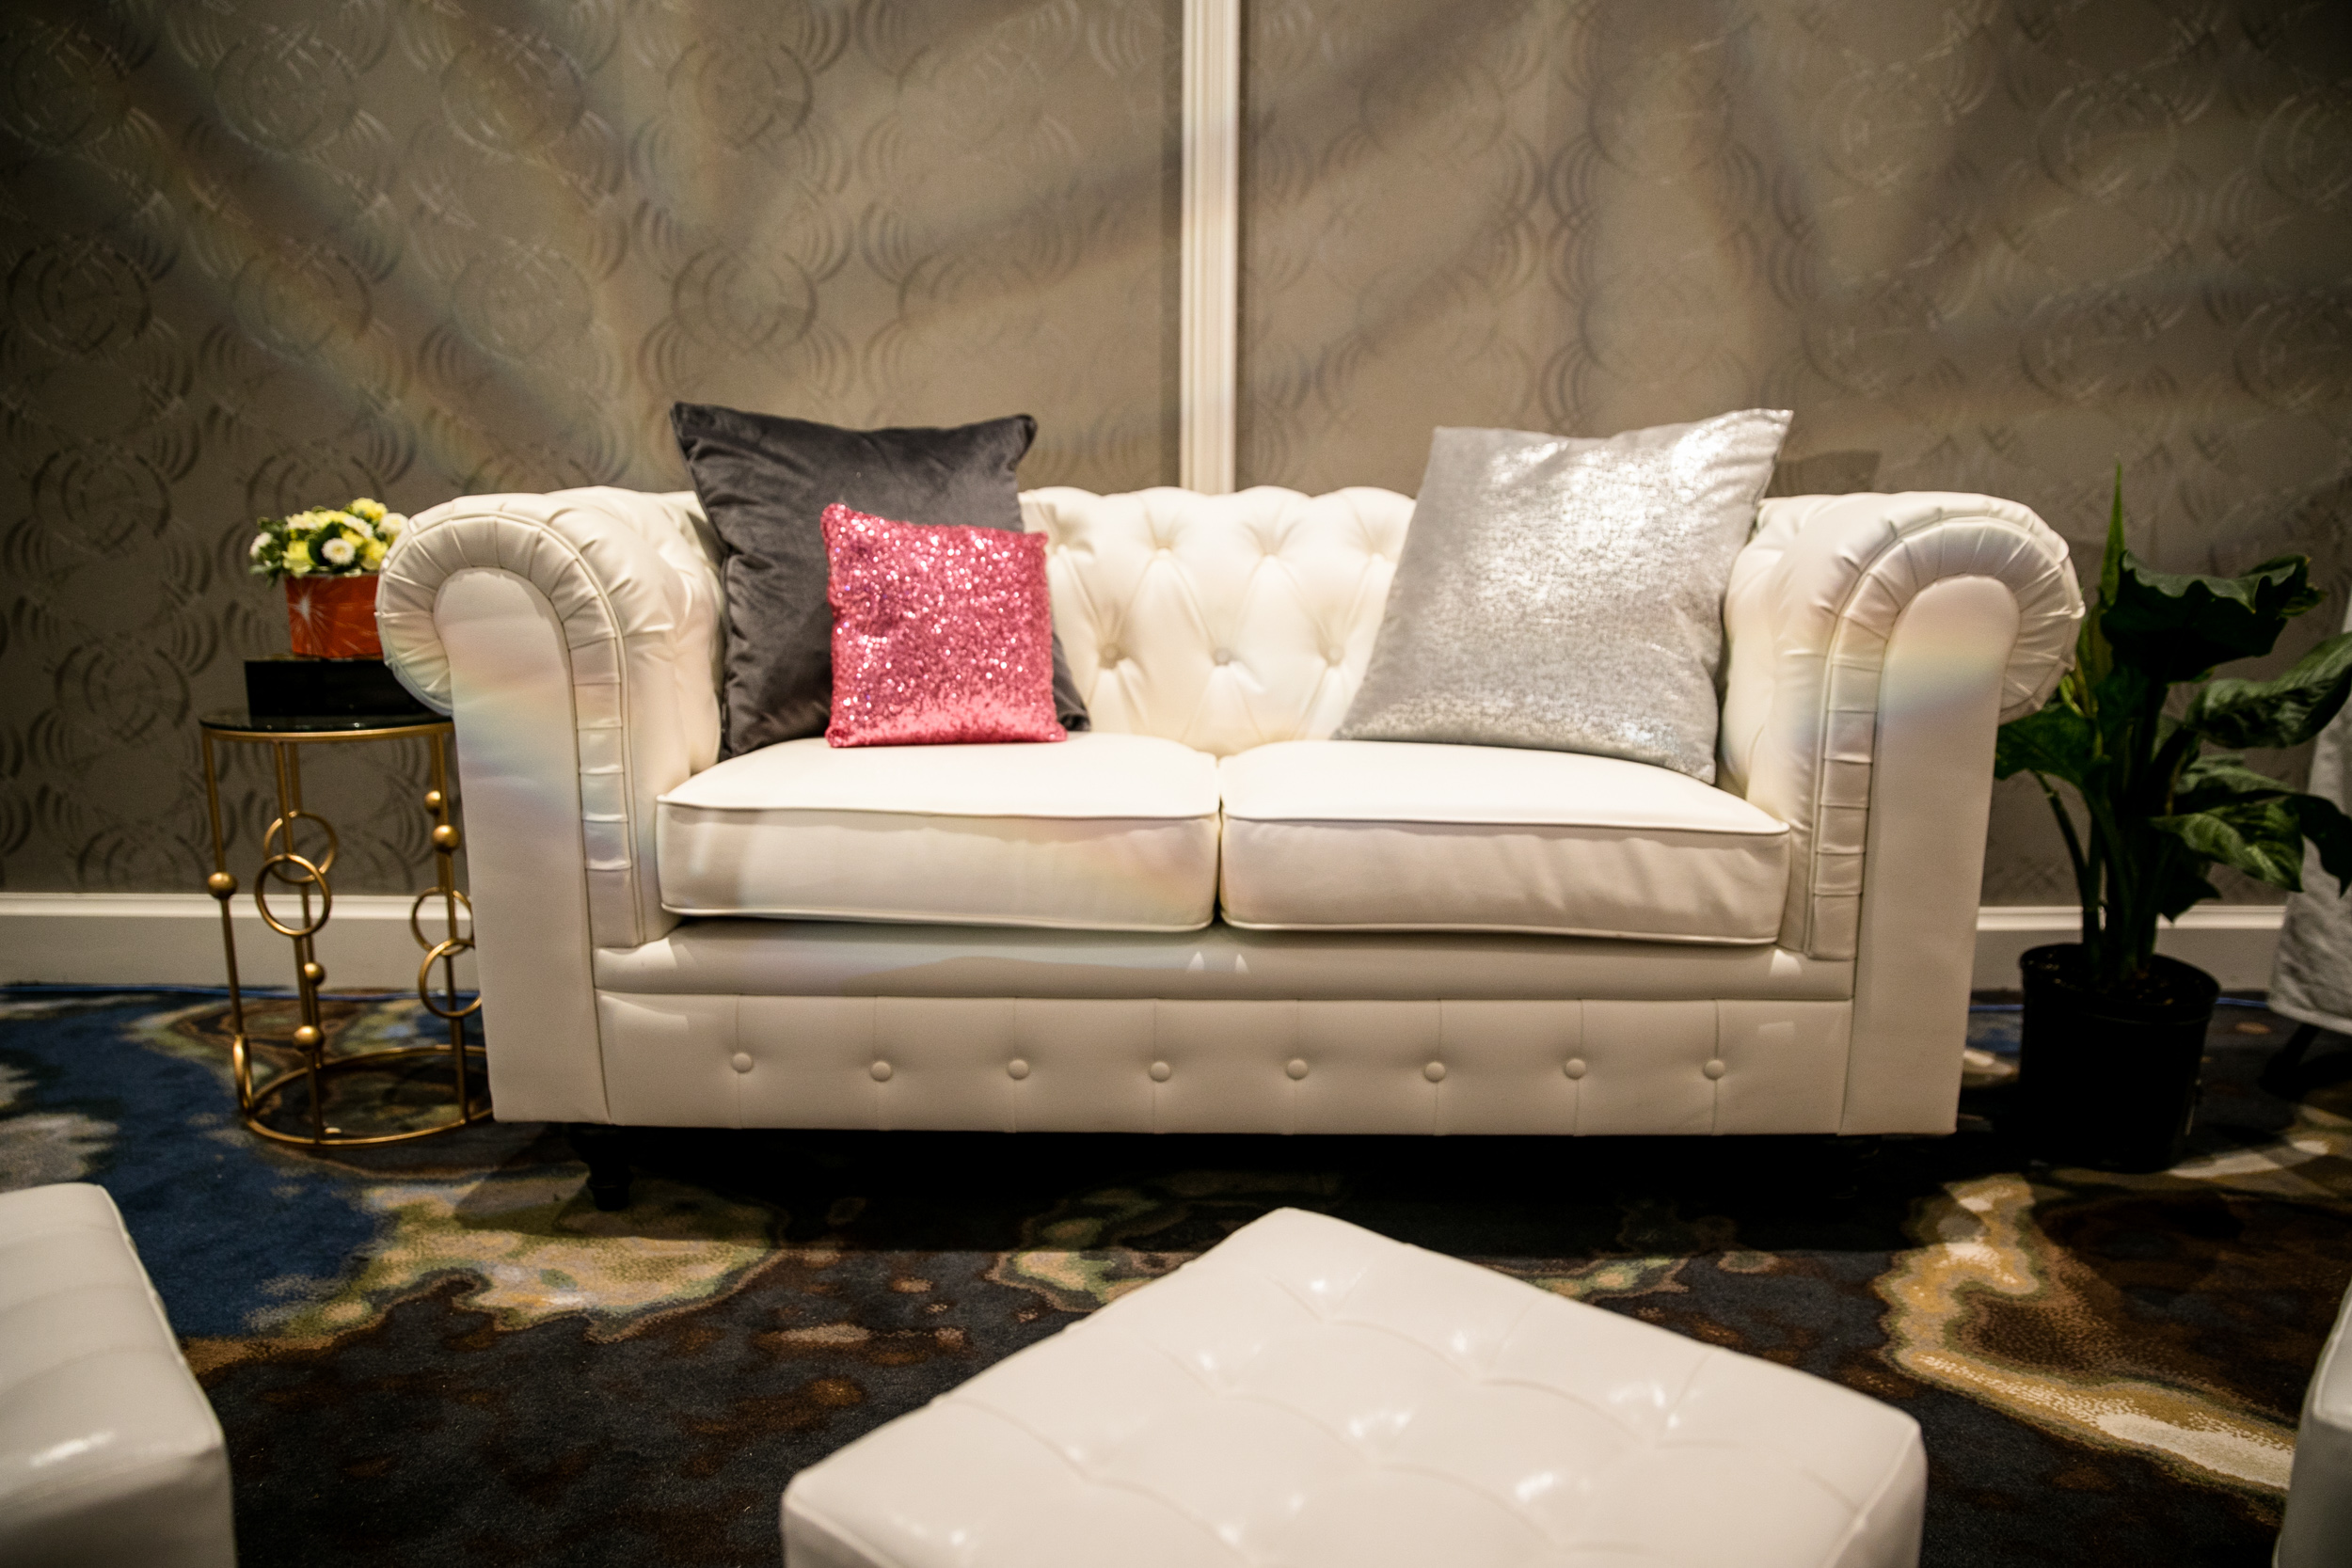 Malloy Weddings | New England wedding furniture rentals | White tufted leather couch wedding lounge furniture rentals